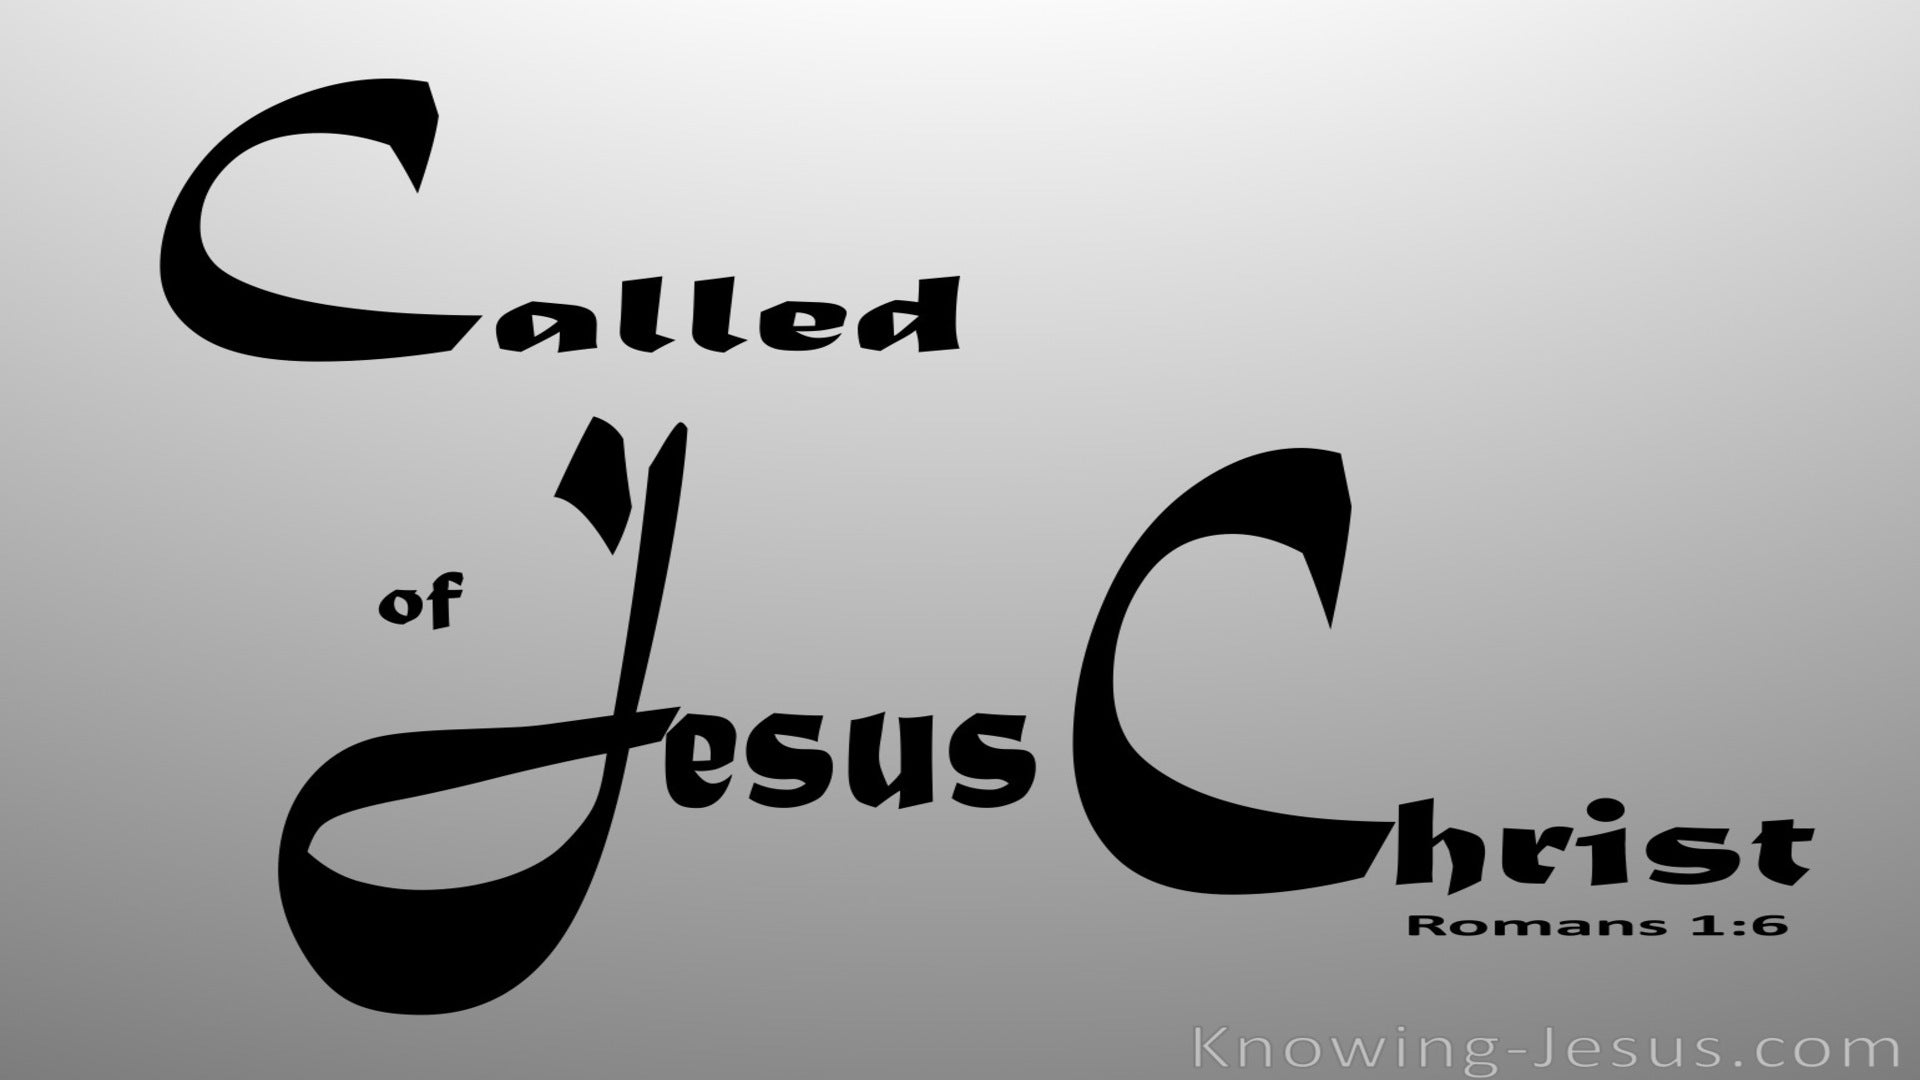 Romans 1:6 Called of Jesus Christ (gray)